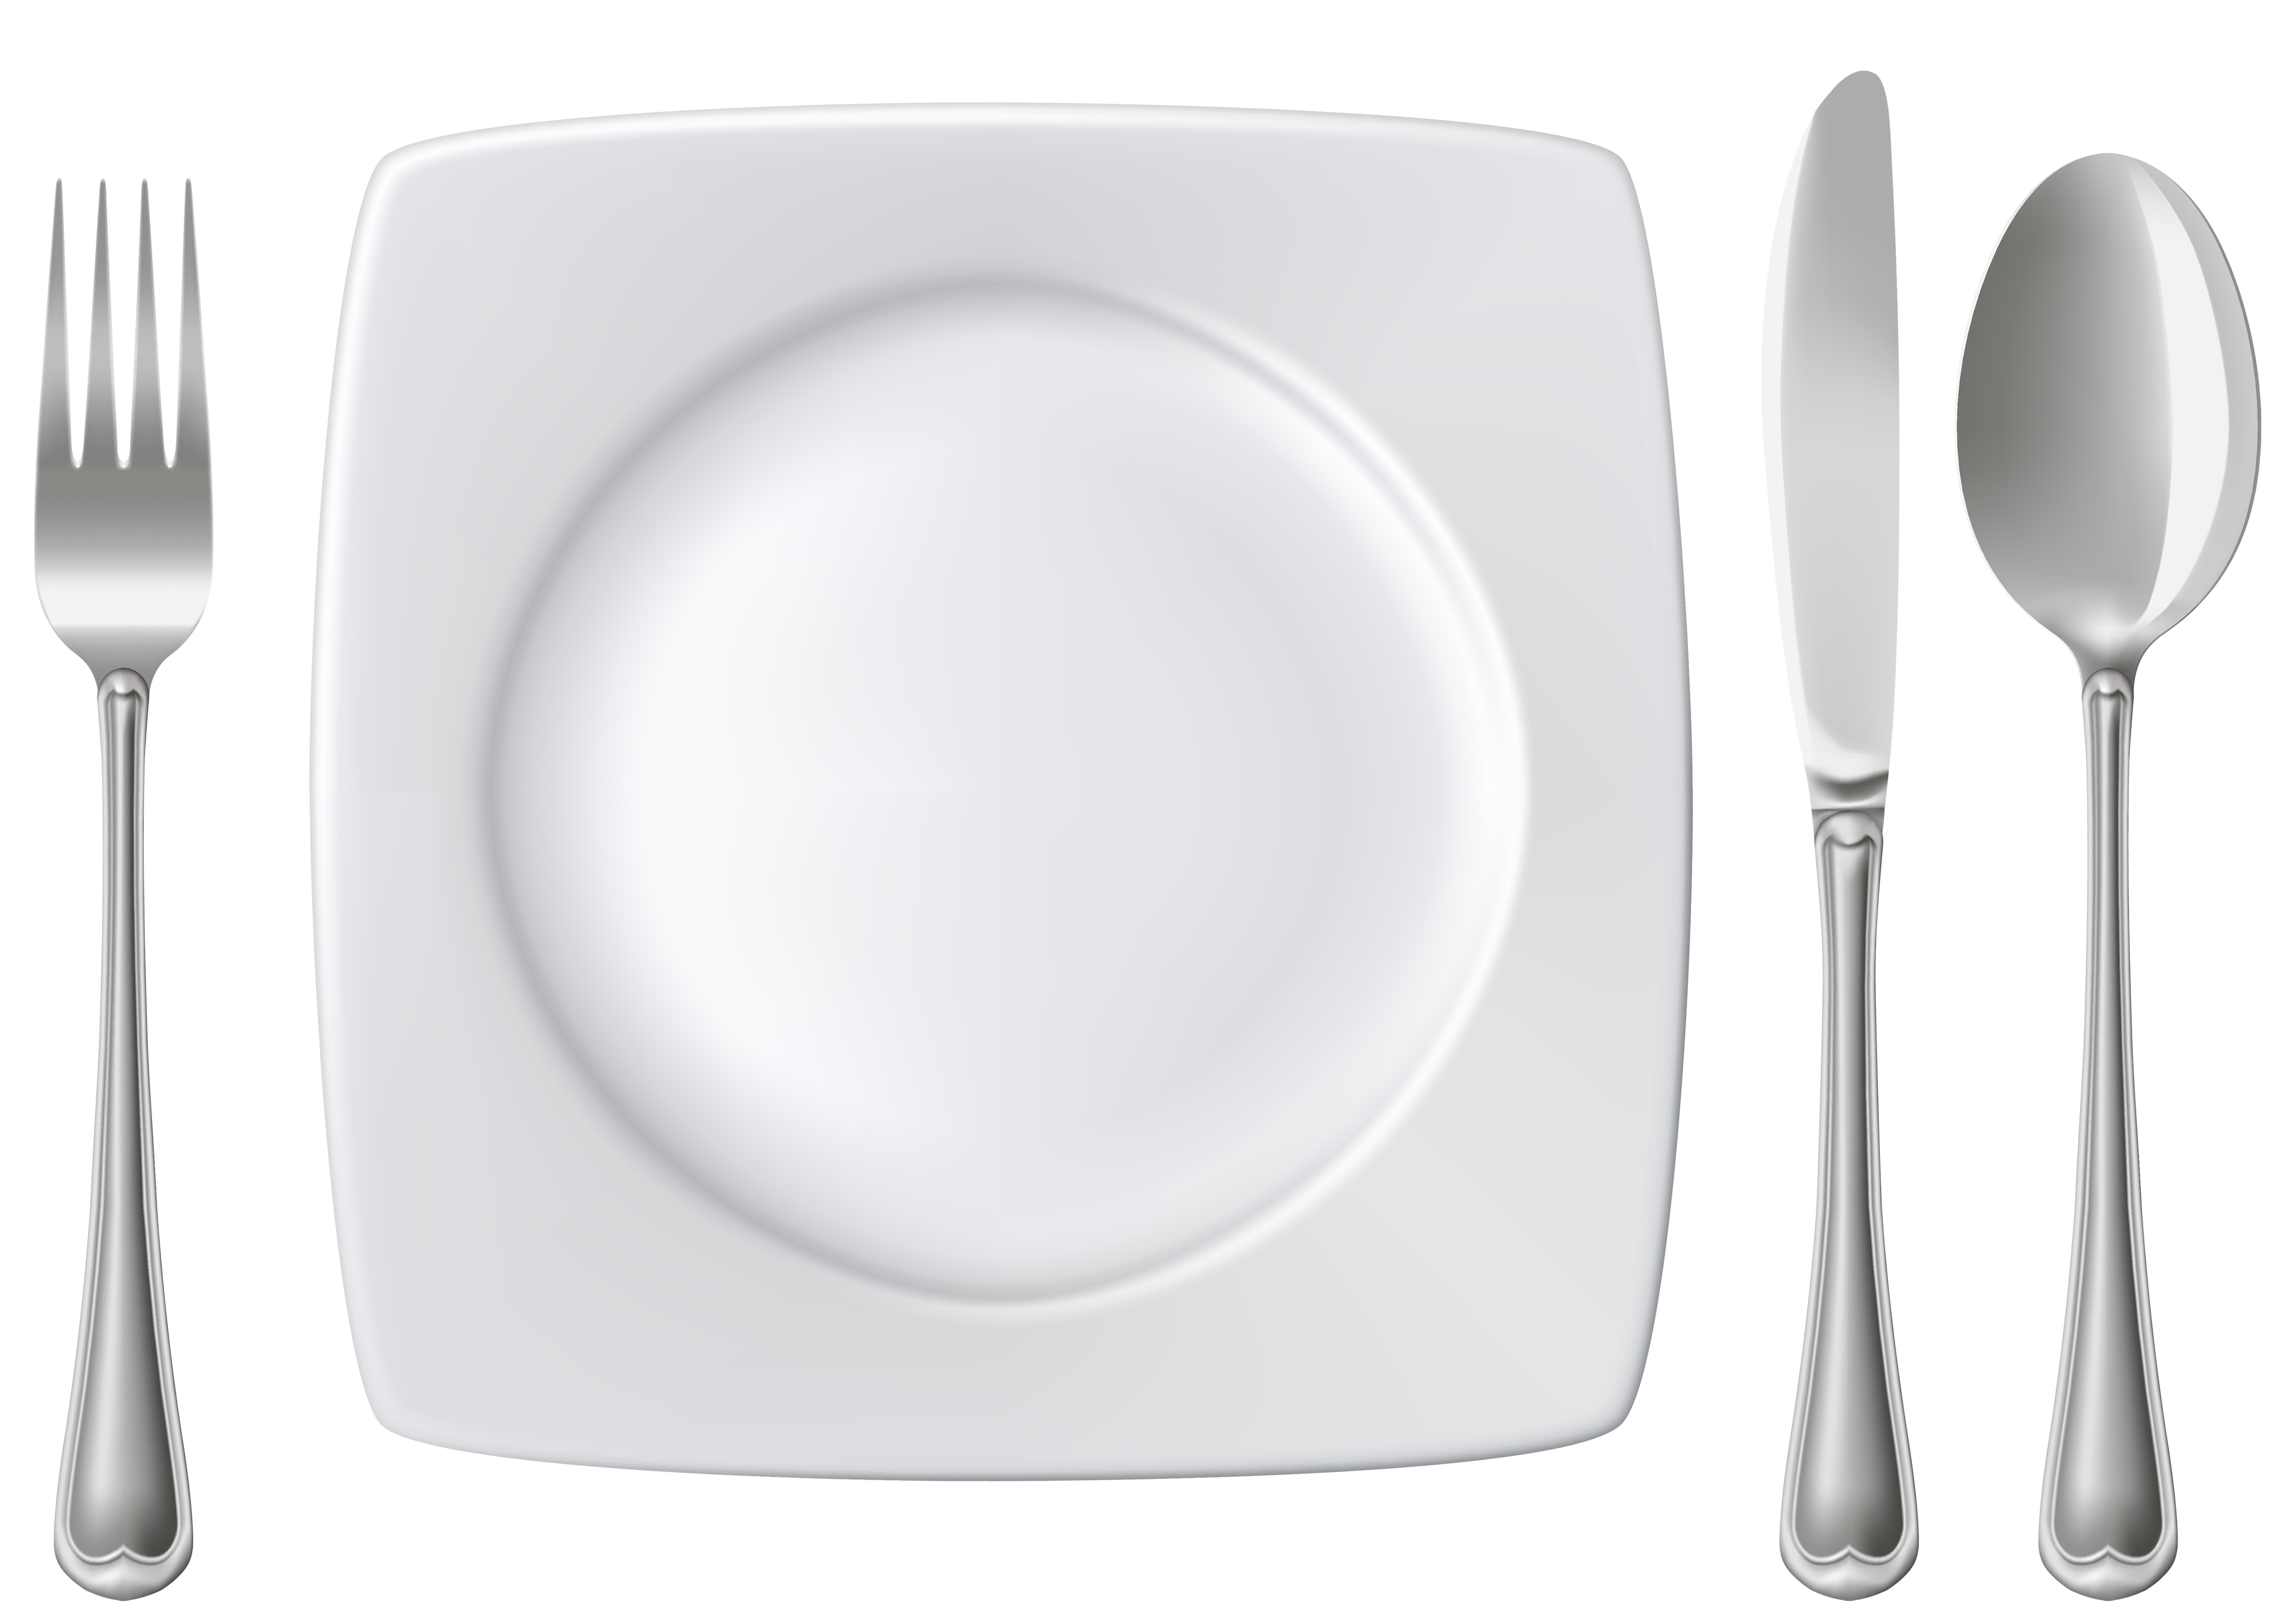 Fork spoon house clipart image transparent library Plate Spoon Knife and Fork PNG Clipart - Best WEB Clipart image transparent library